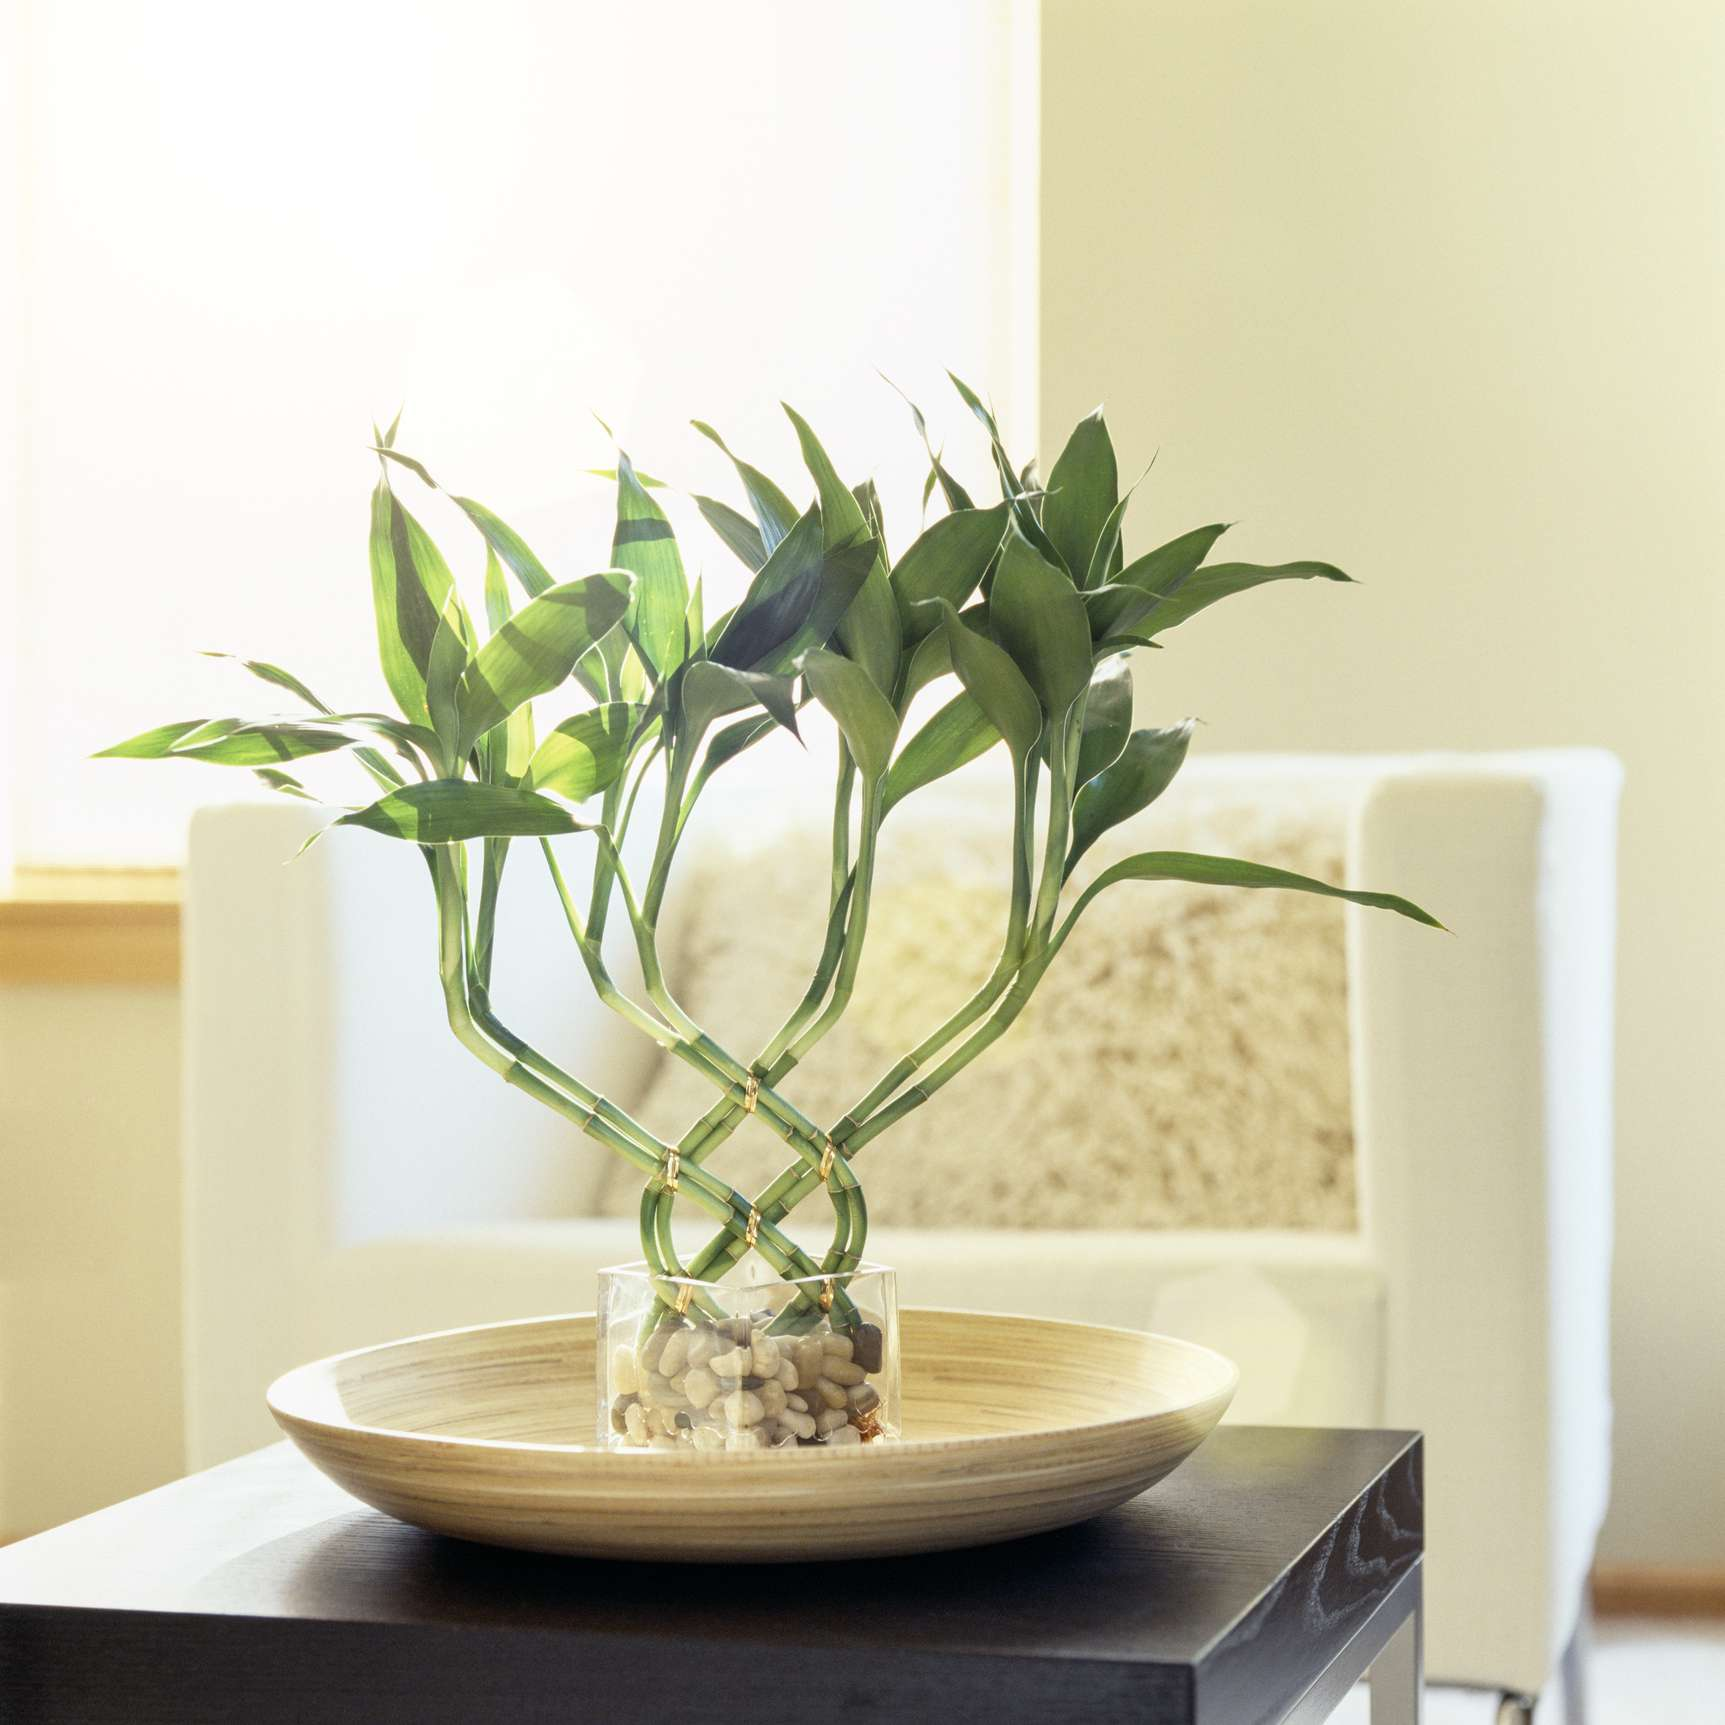 lucky bamboo woven together in a bowl on top of a black table with window in background